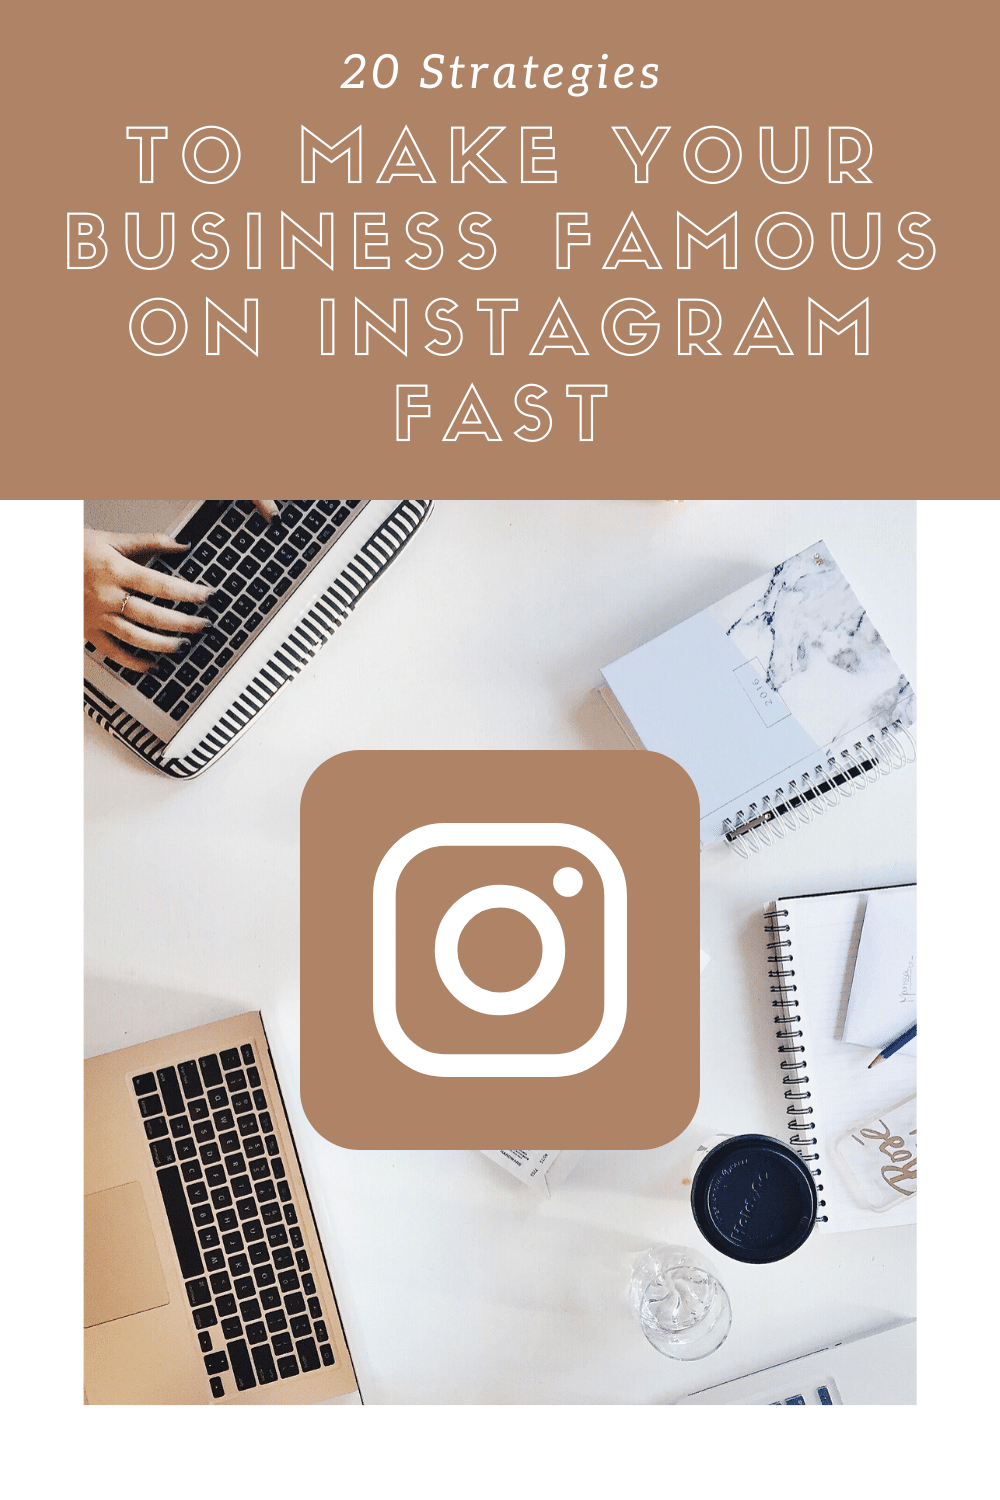 20 Strategies To Make Your Business Famous On Instagram Fast